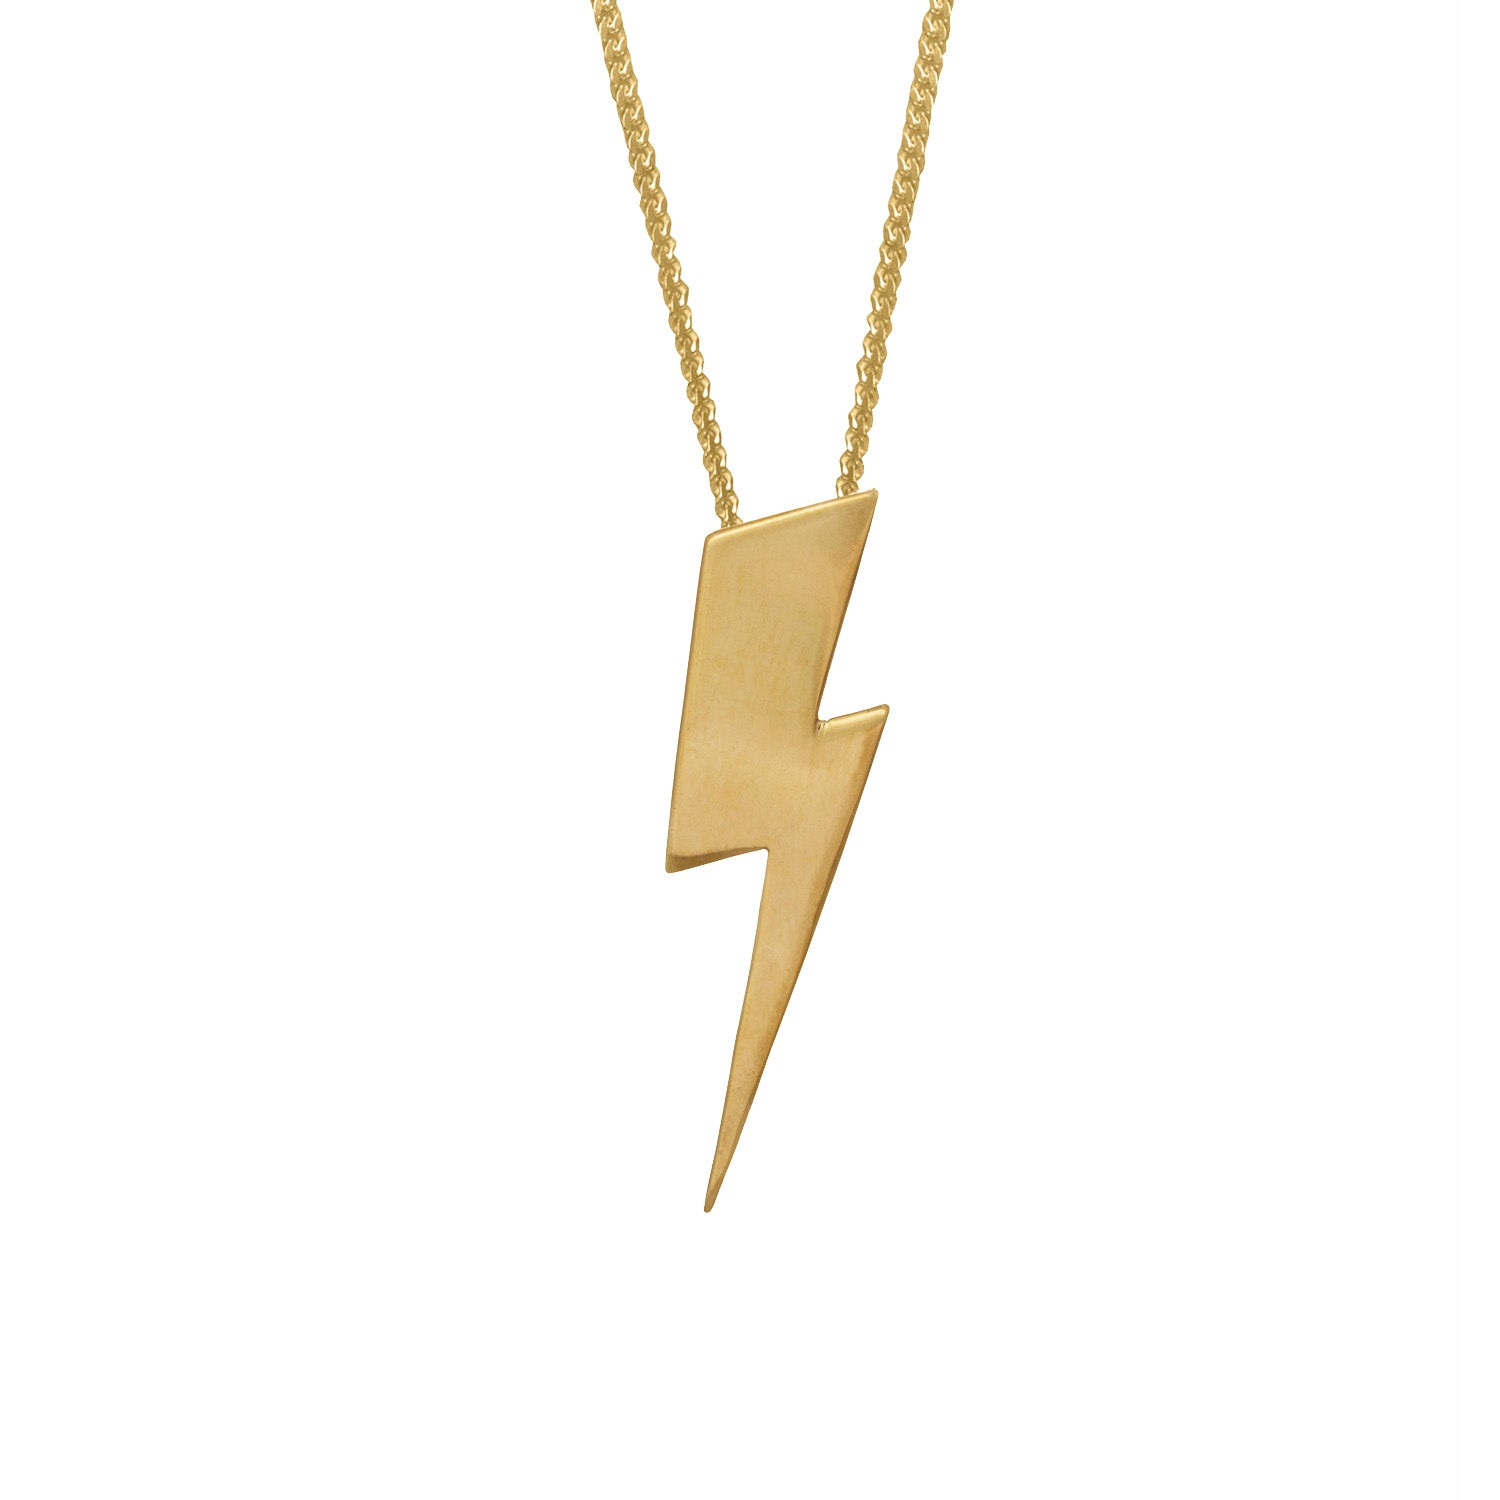 Edge Only Flat Top Lightning Bolt Pendant in Sterling Silver